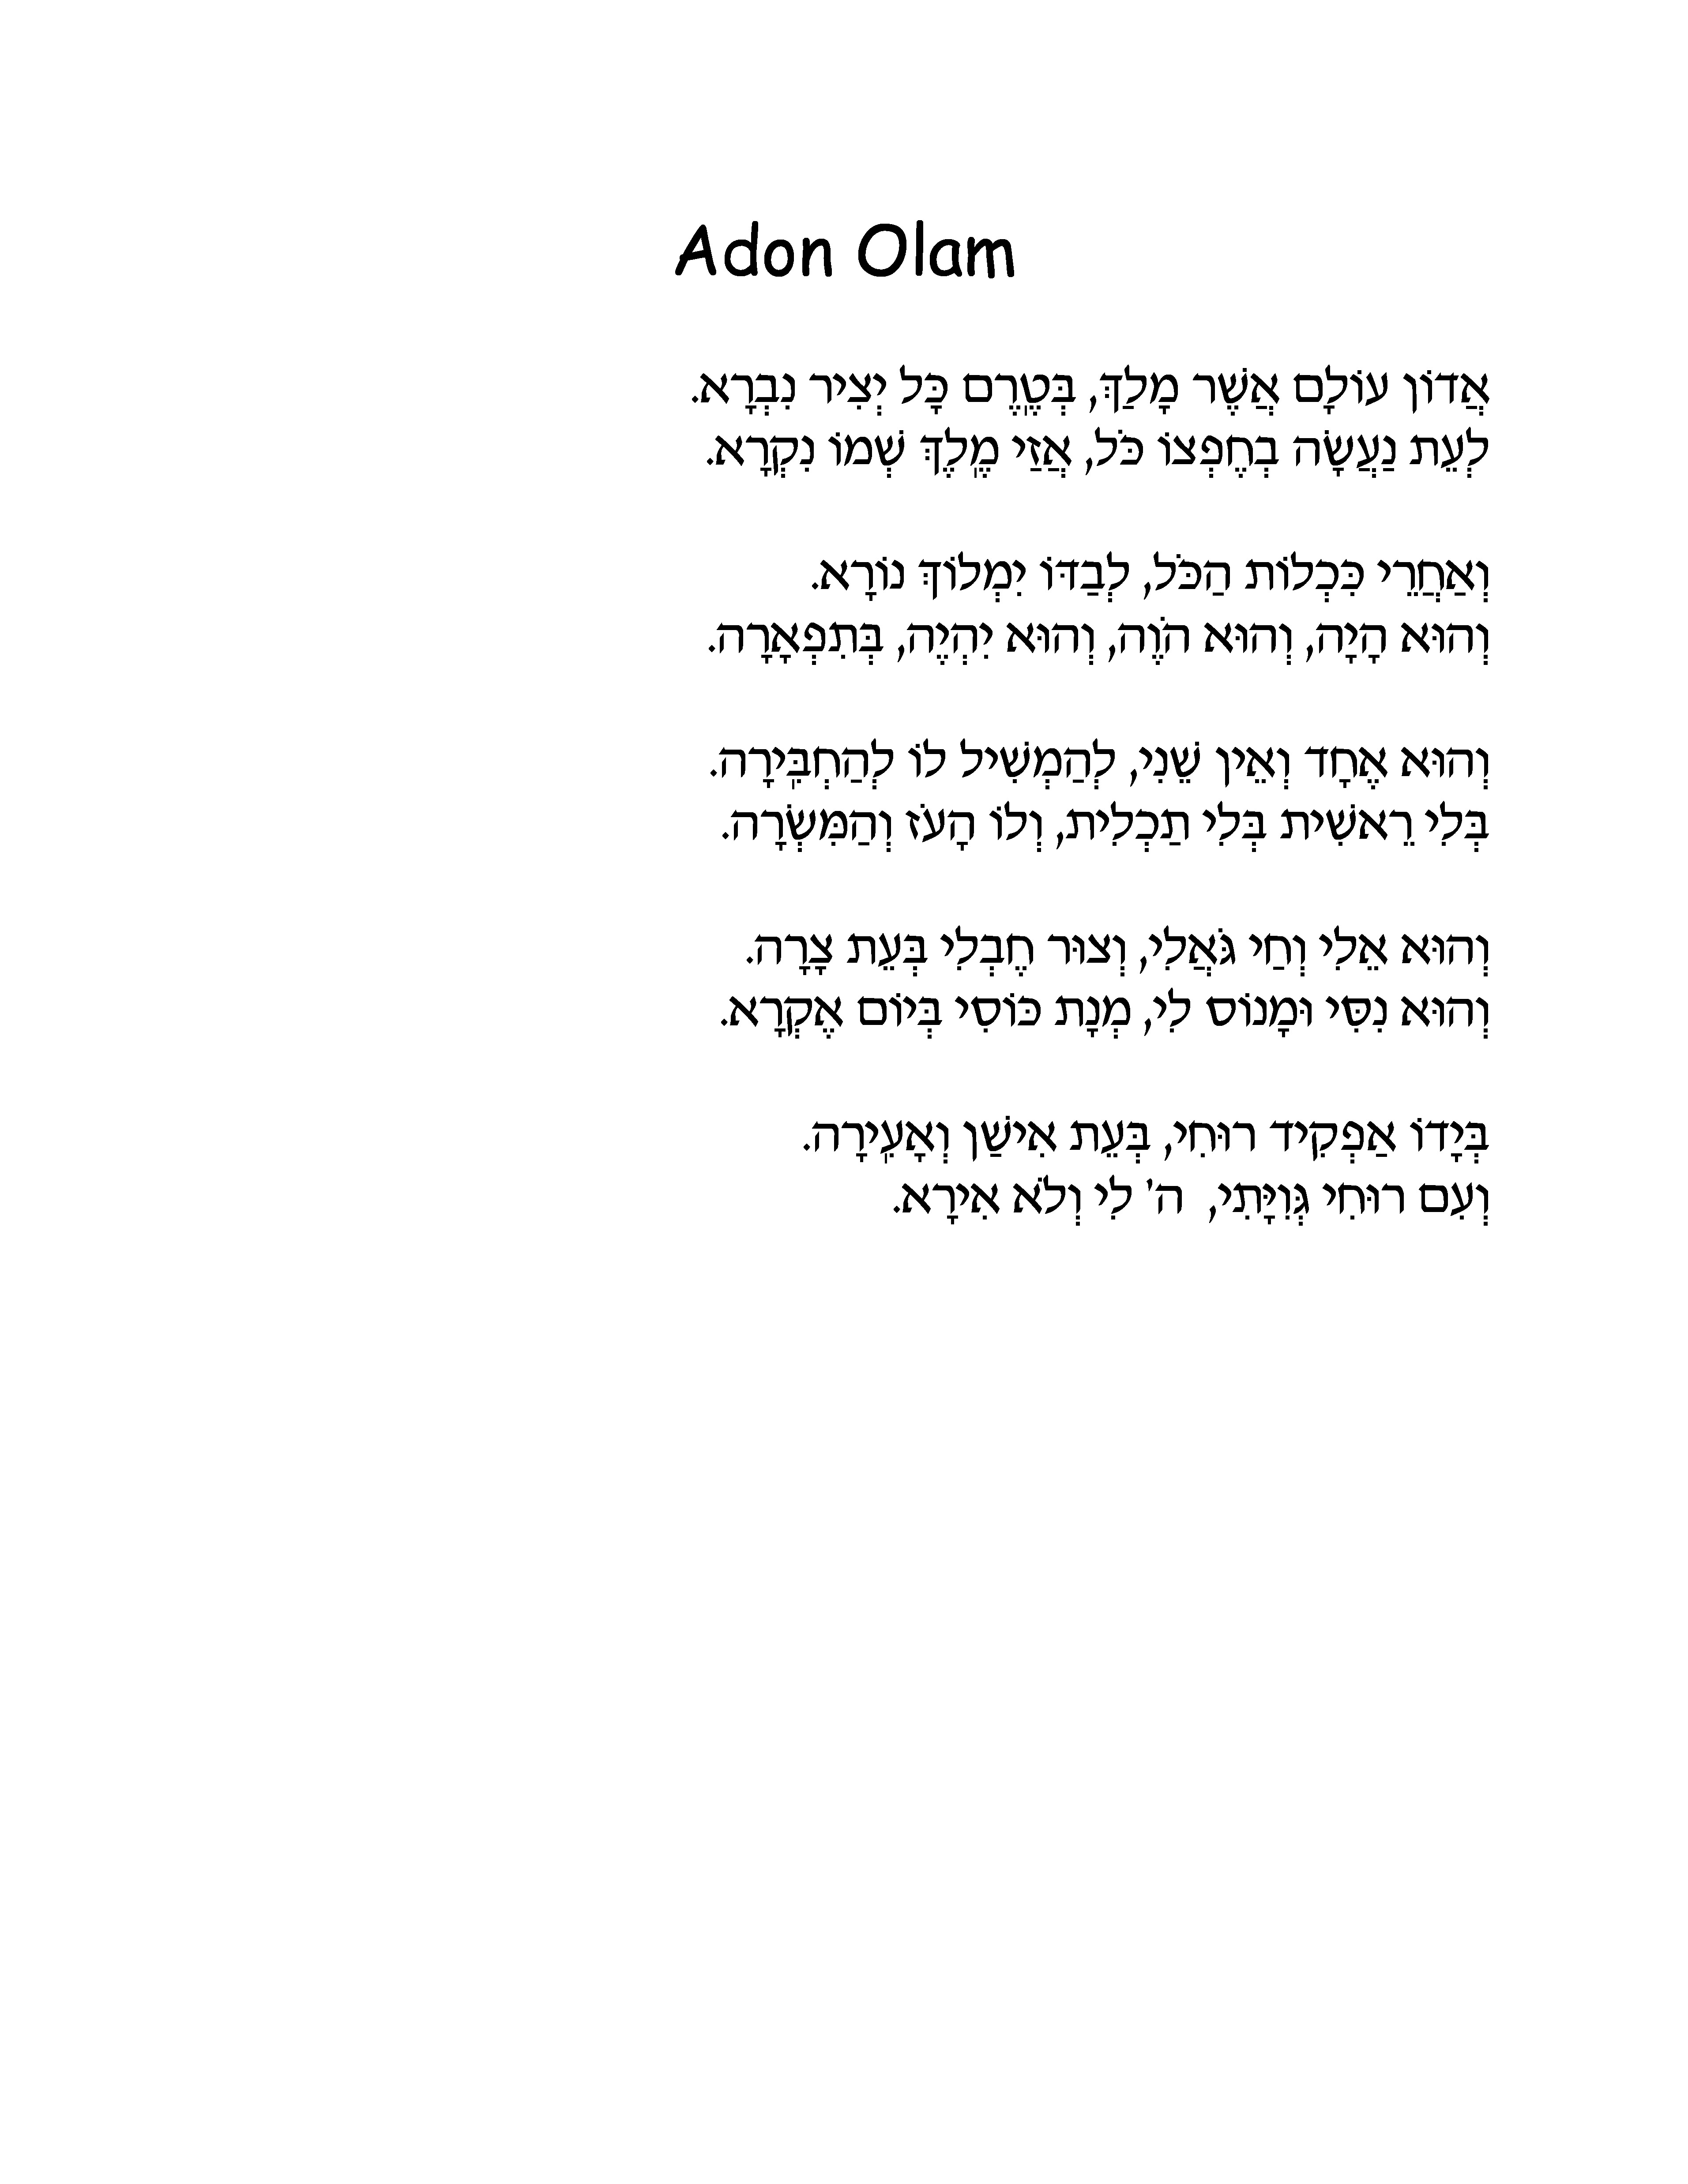 Lyrics in Hebrew